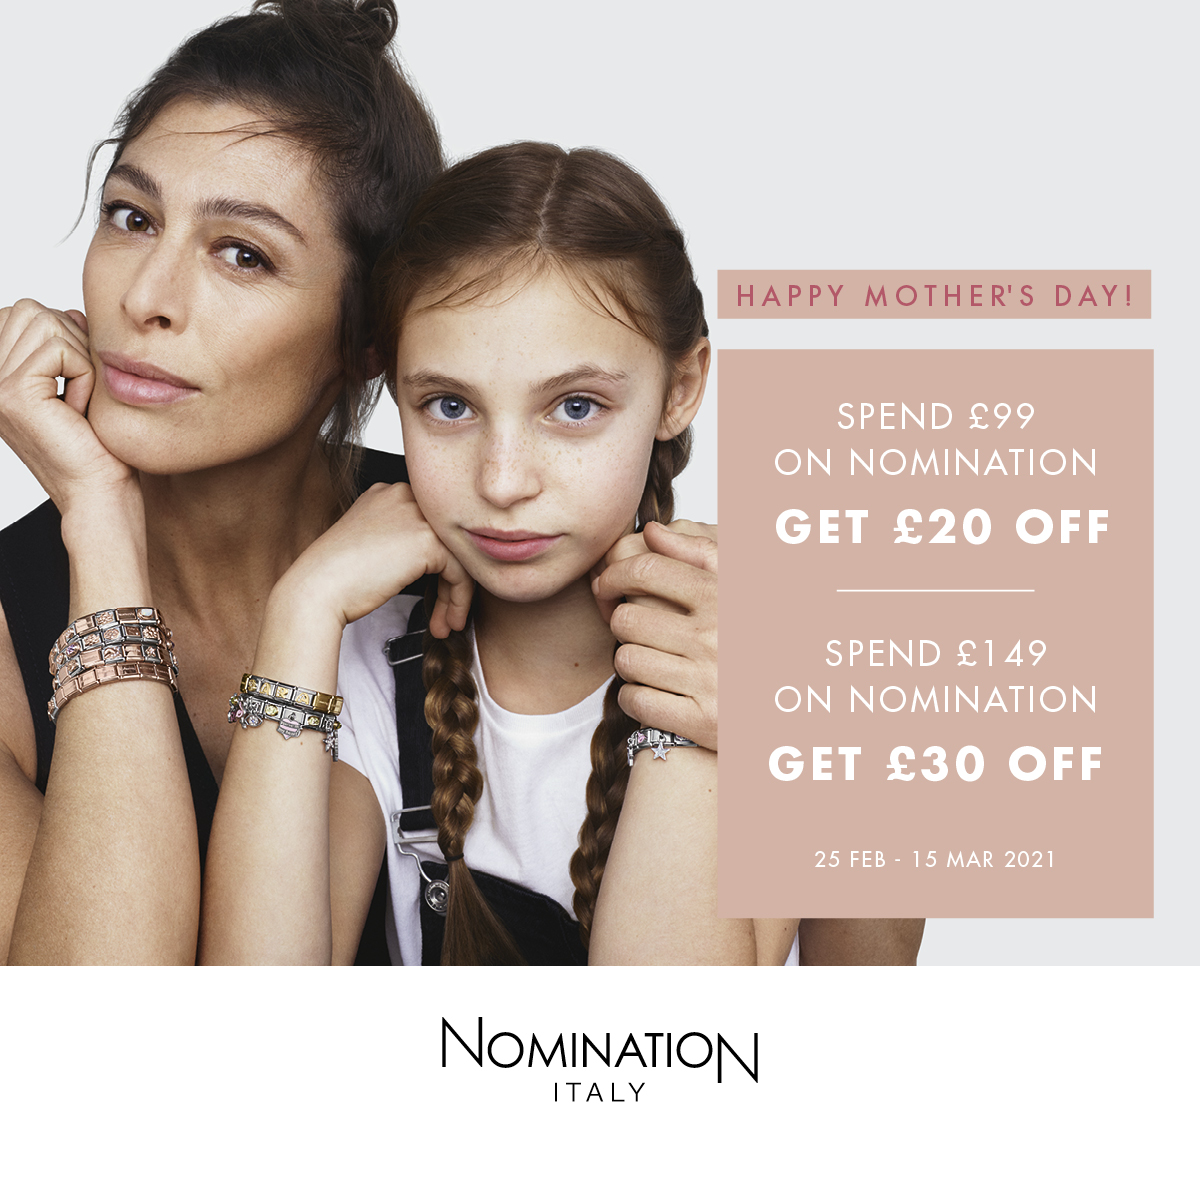 Have you got money off your Nomination order yet?   Spend £99 on Nomination and get £20 OFF  OR  Spend £149 on Nomination and get £30 OFF   Shop Nomination 👉  #Sundayfeeling #Sundaythoughts